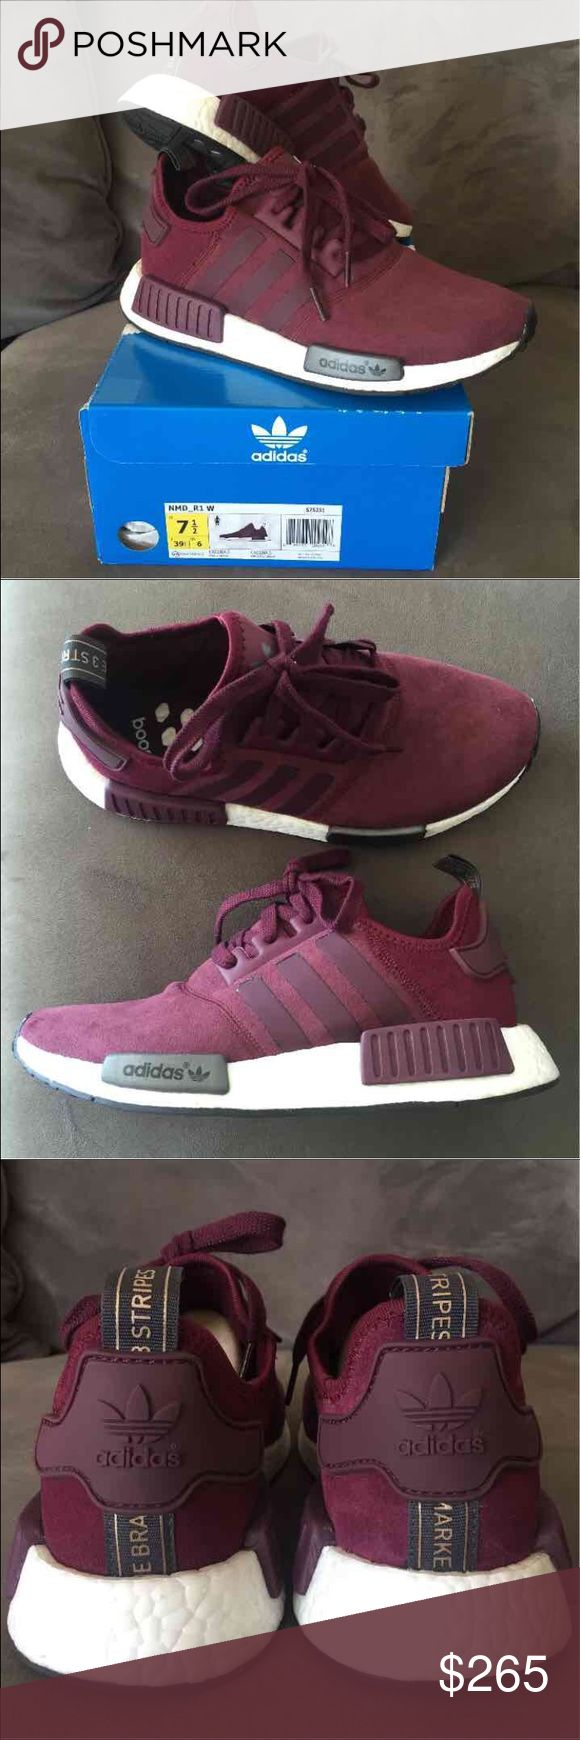 Adidas NMD_R1 boost Received as gift but a little loose on me. Never worn. New without tags. Burgundy and suede color way. sold out. 7.5 women's. Comes with box. adidas Shoes Sneakers